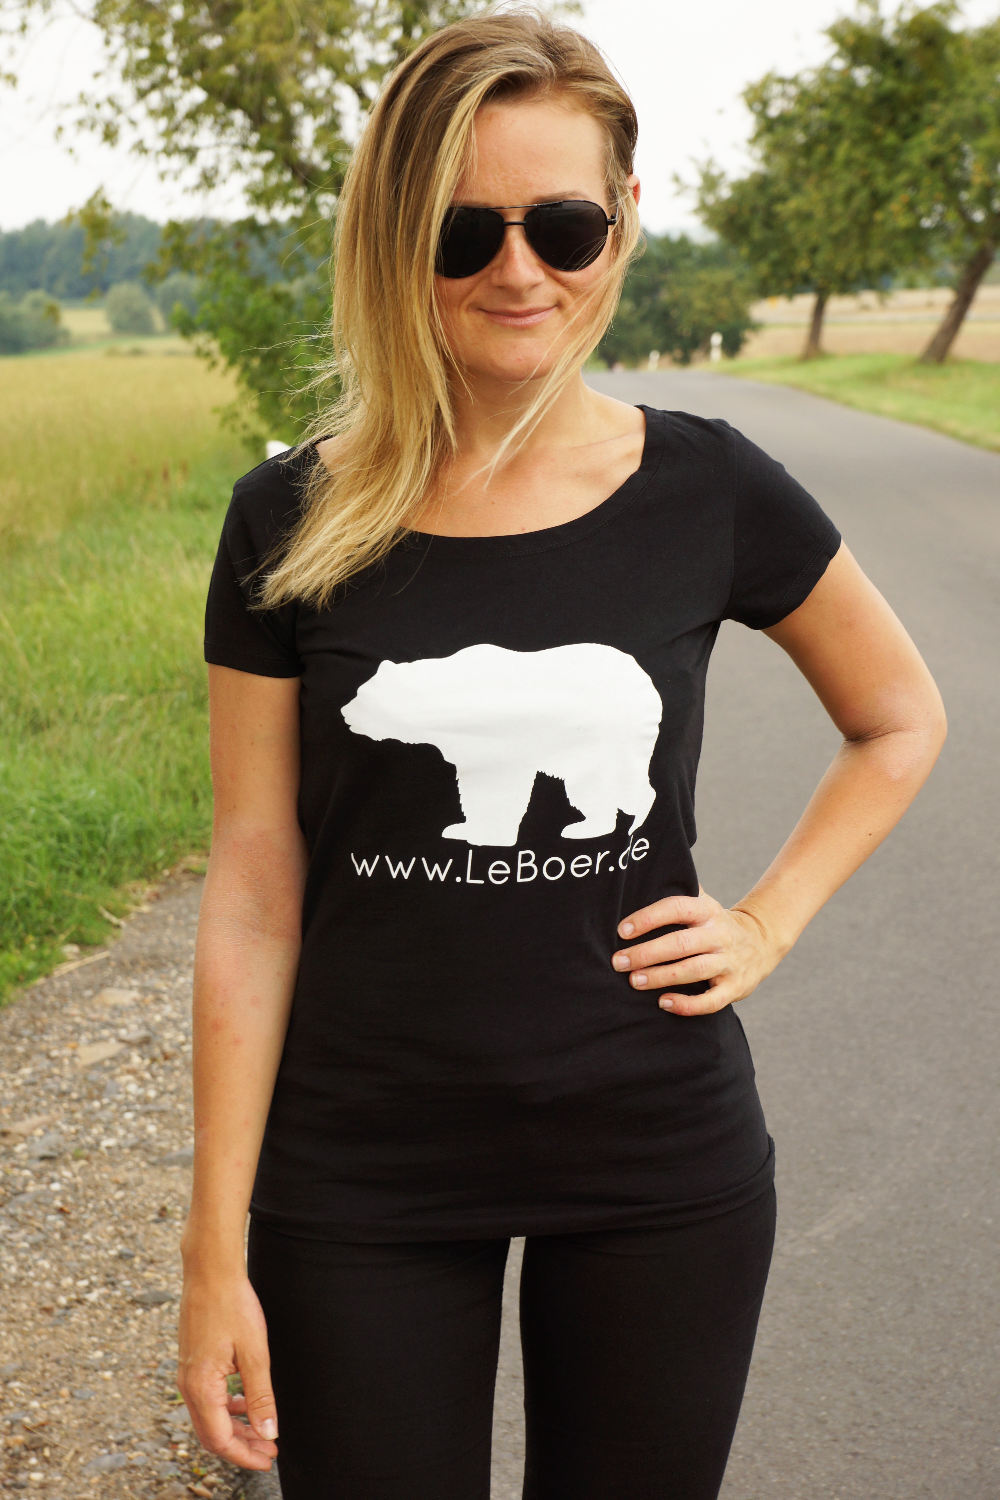 LeBoer, Tees for a good cause